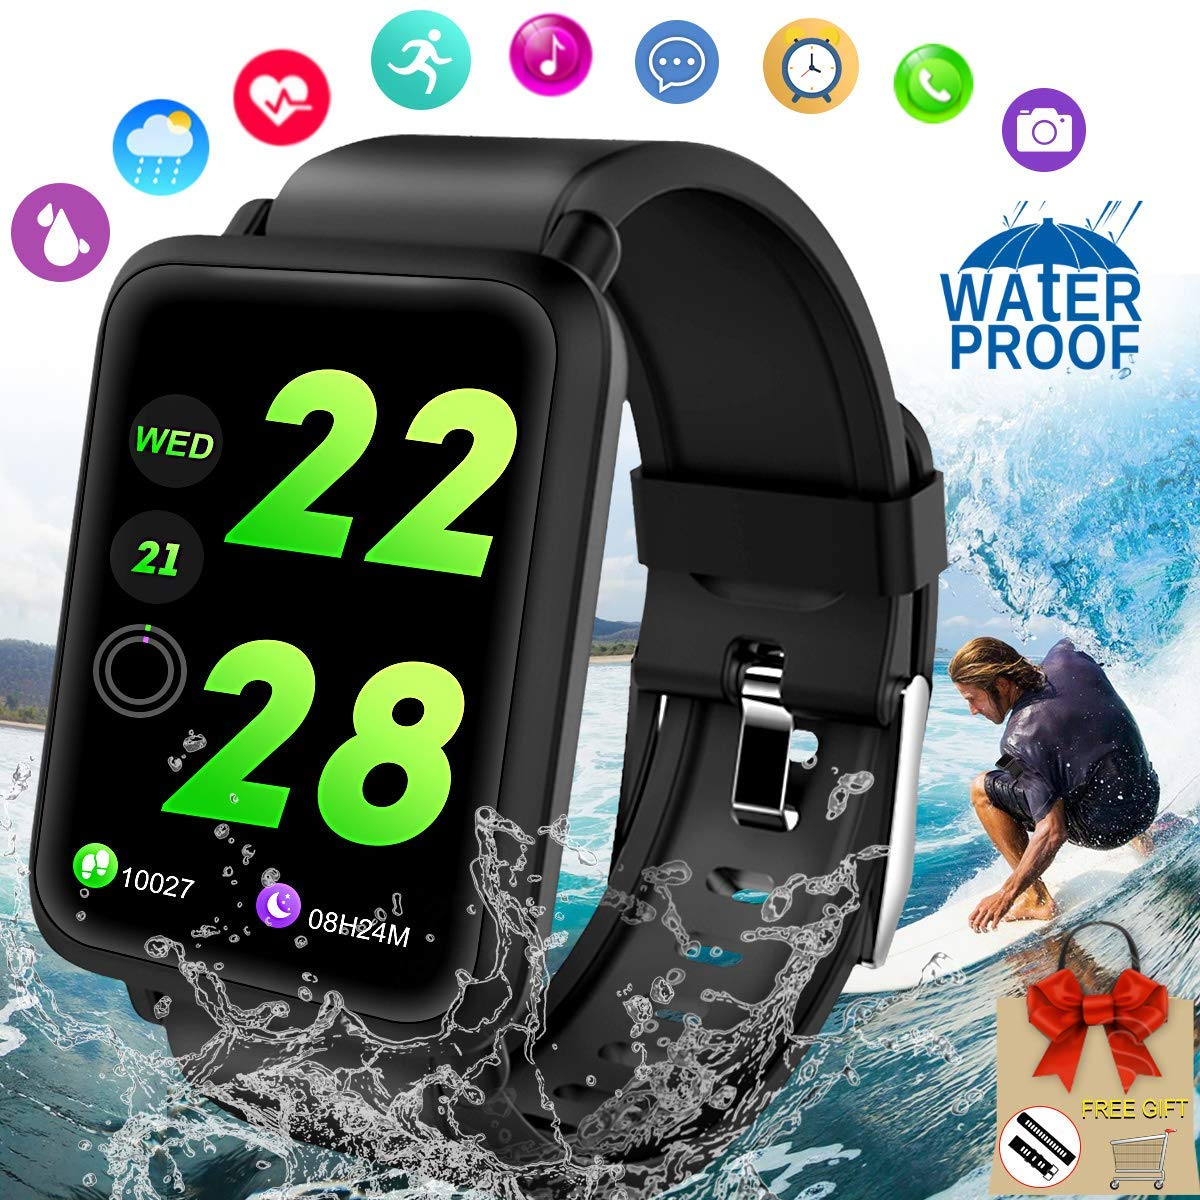 Fitness Tracker Smart Watch, Waterproof Fitness Watches with Blood Pressure Heart Rate Calorie Monitor,Sport Bluetooth Smartwatch Activity Tracker Watch with Pedometer for Women Men Android iOS